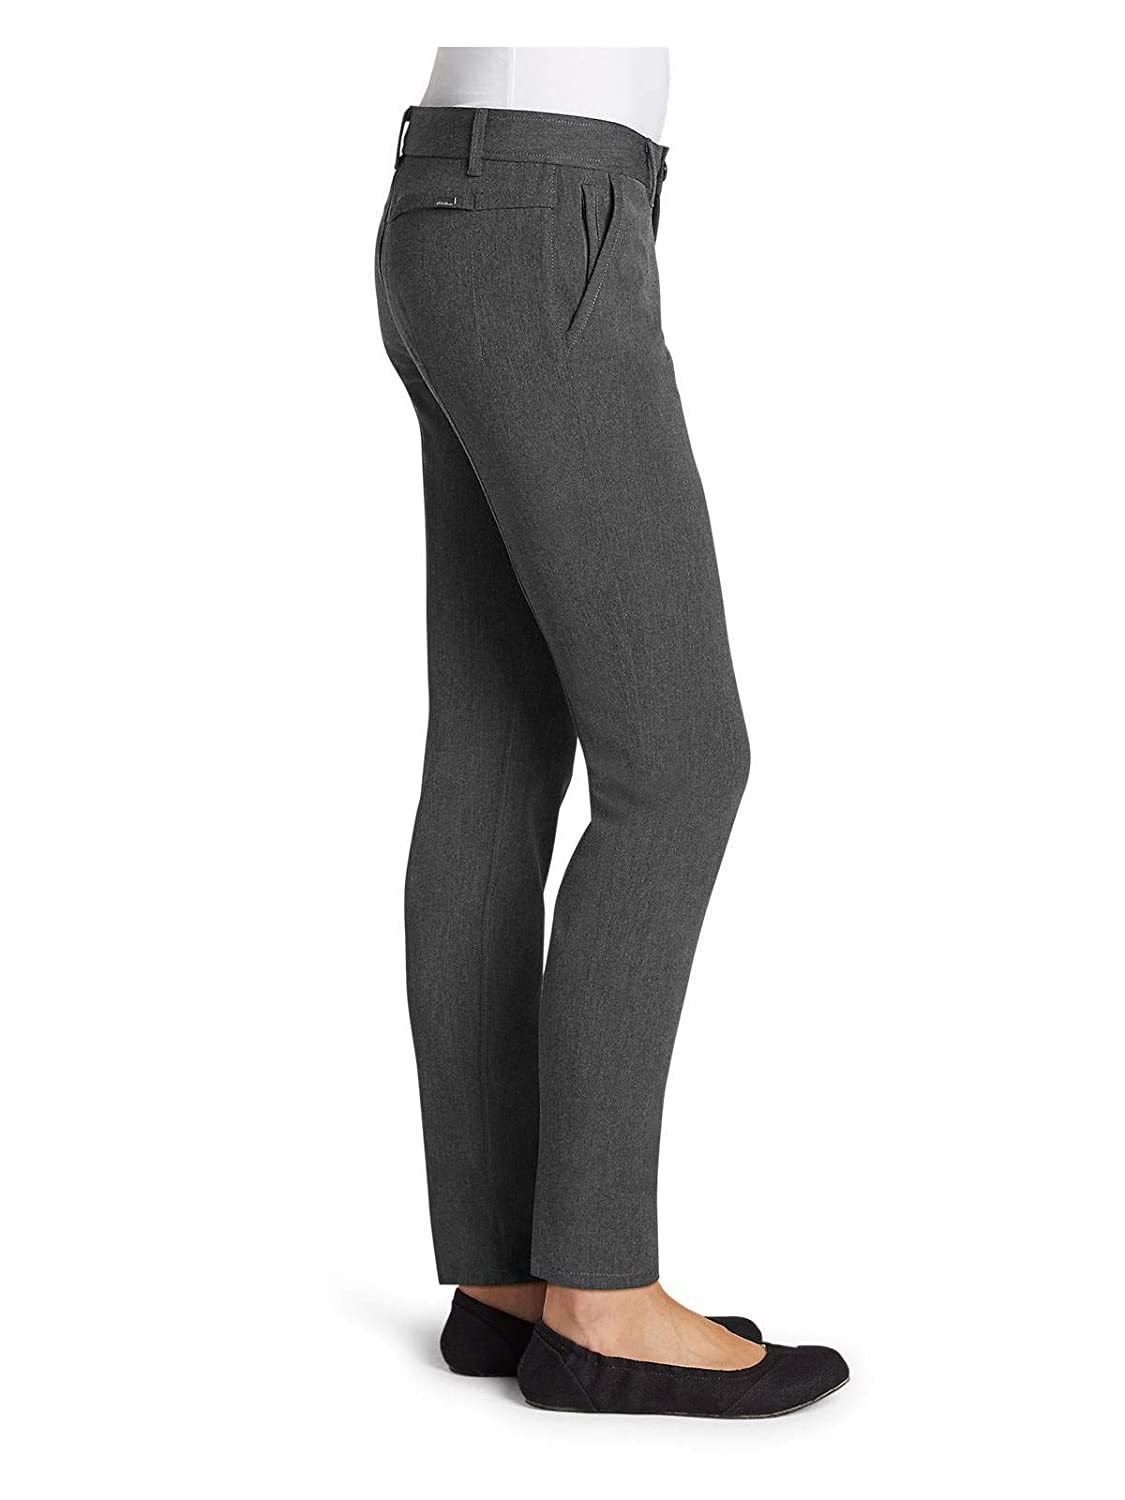 0a9432a5059 Eddie Bauer Women s Travel Pants - Slightly Curvy at Amazon Women s  Clothing store